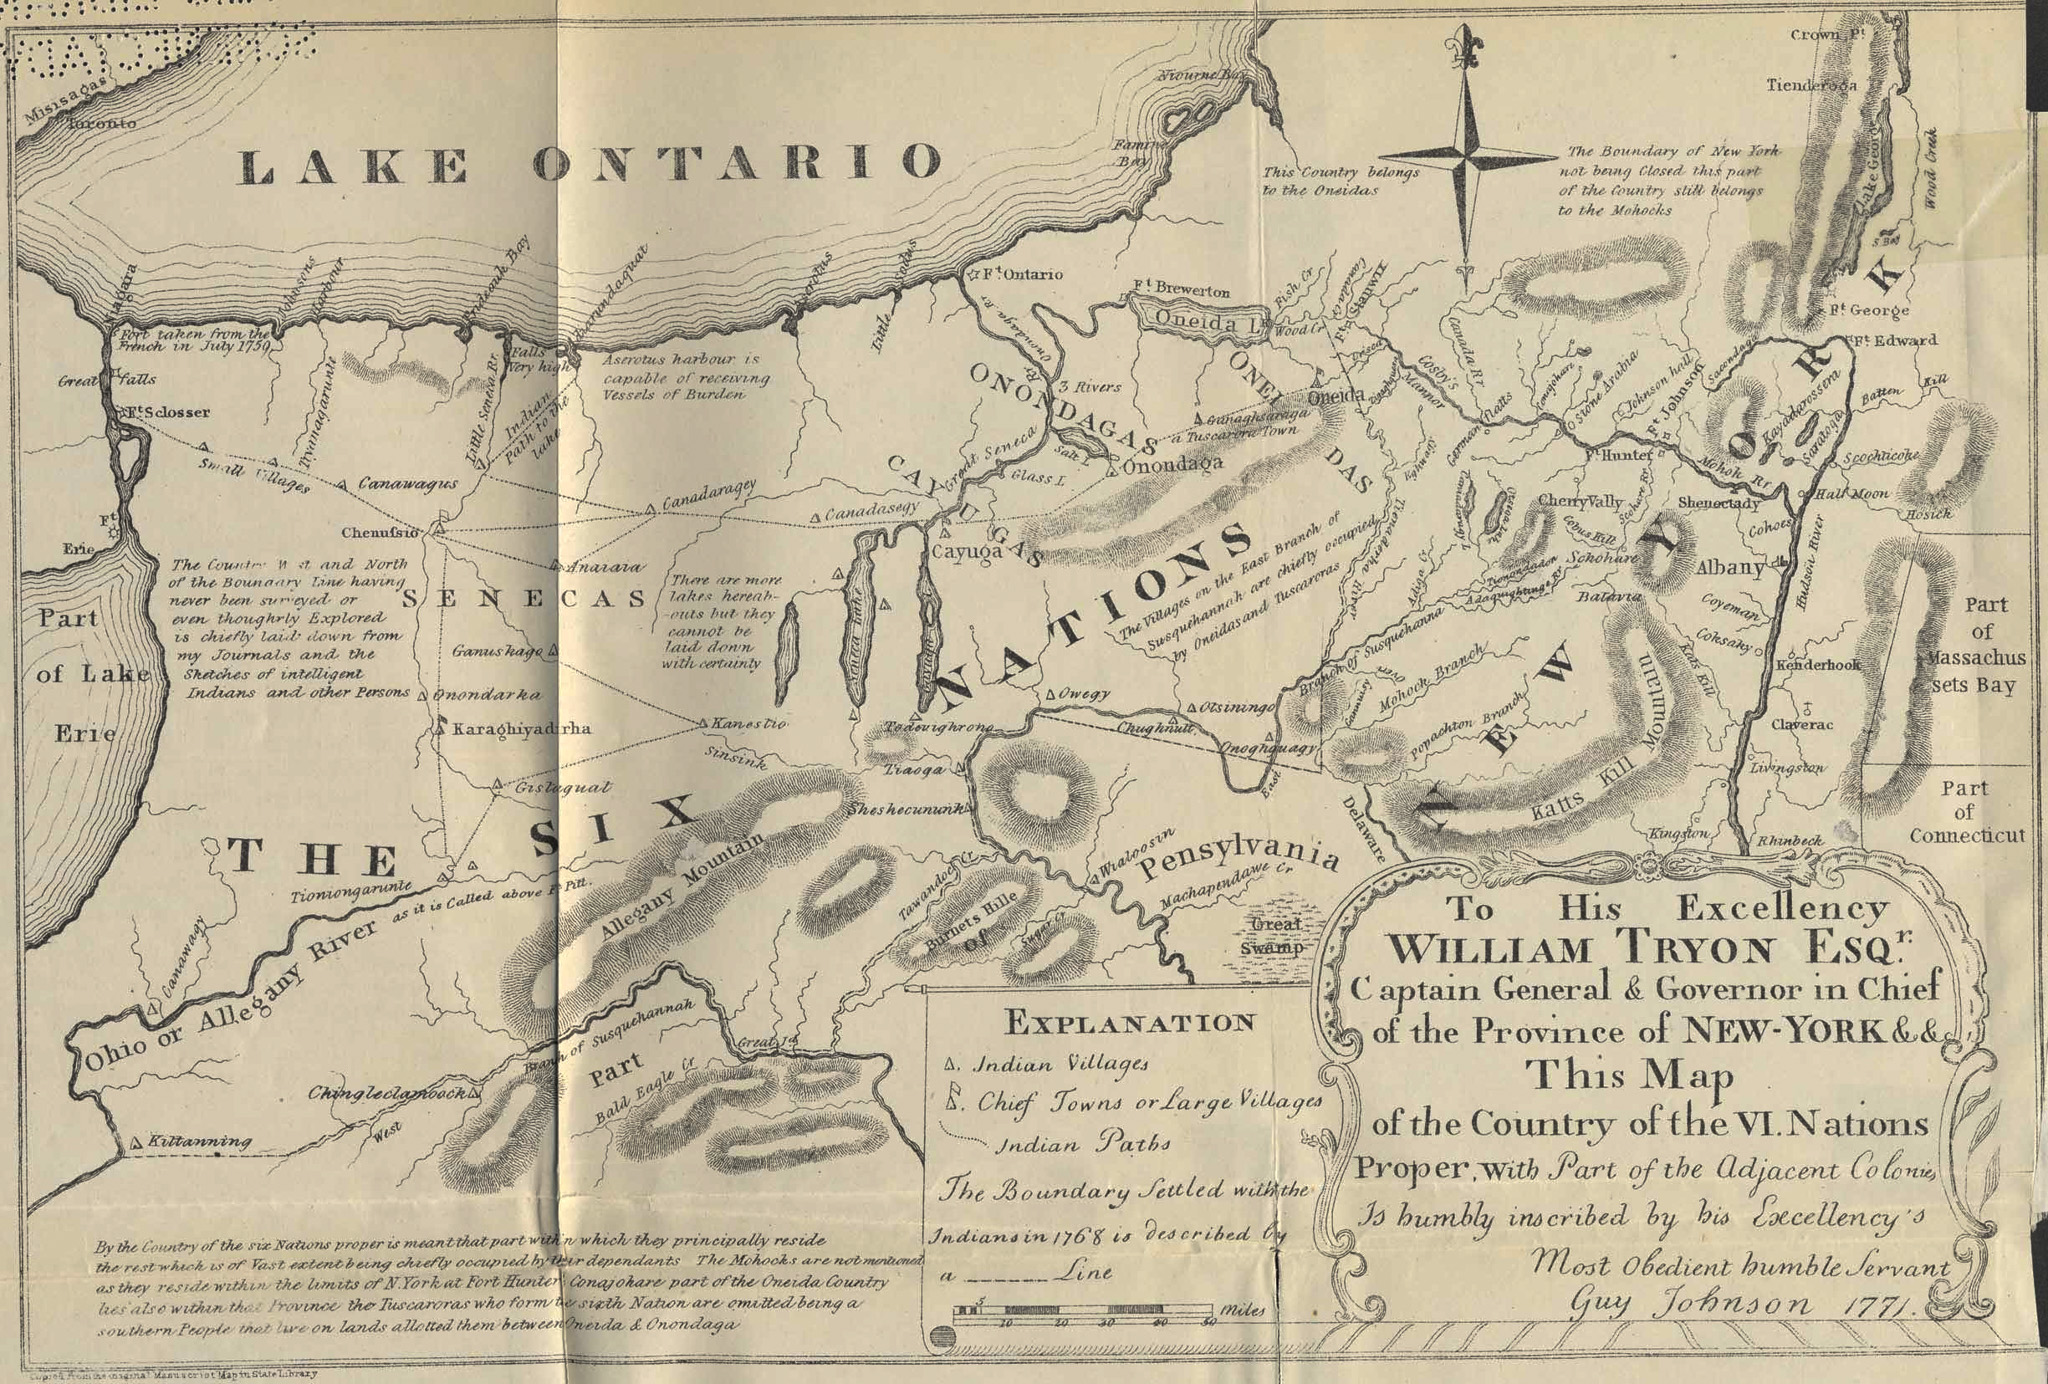 1771 Map of New York by Guy Johnson